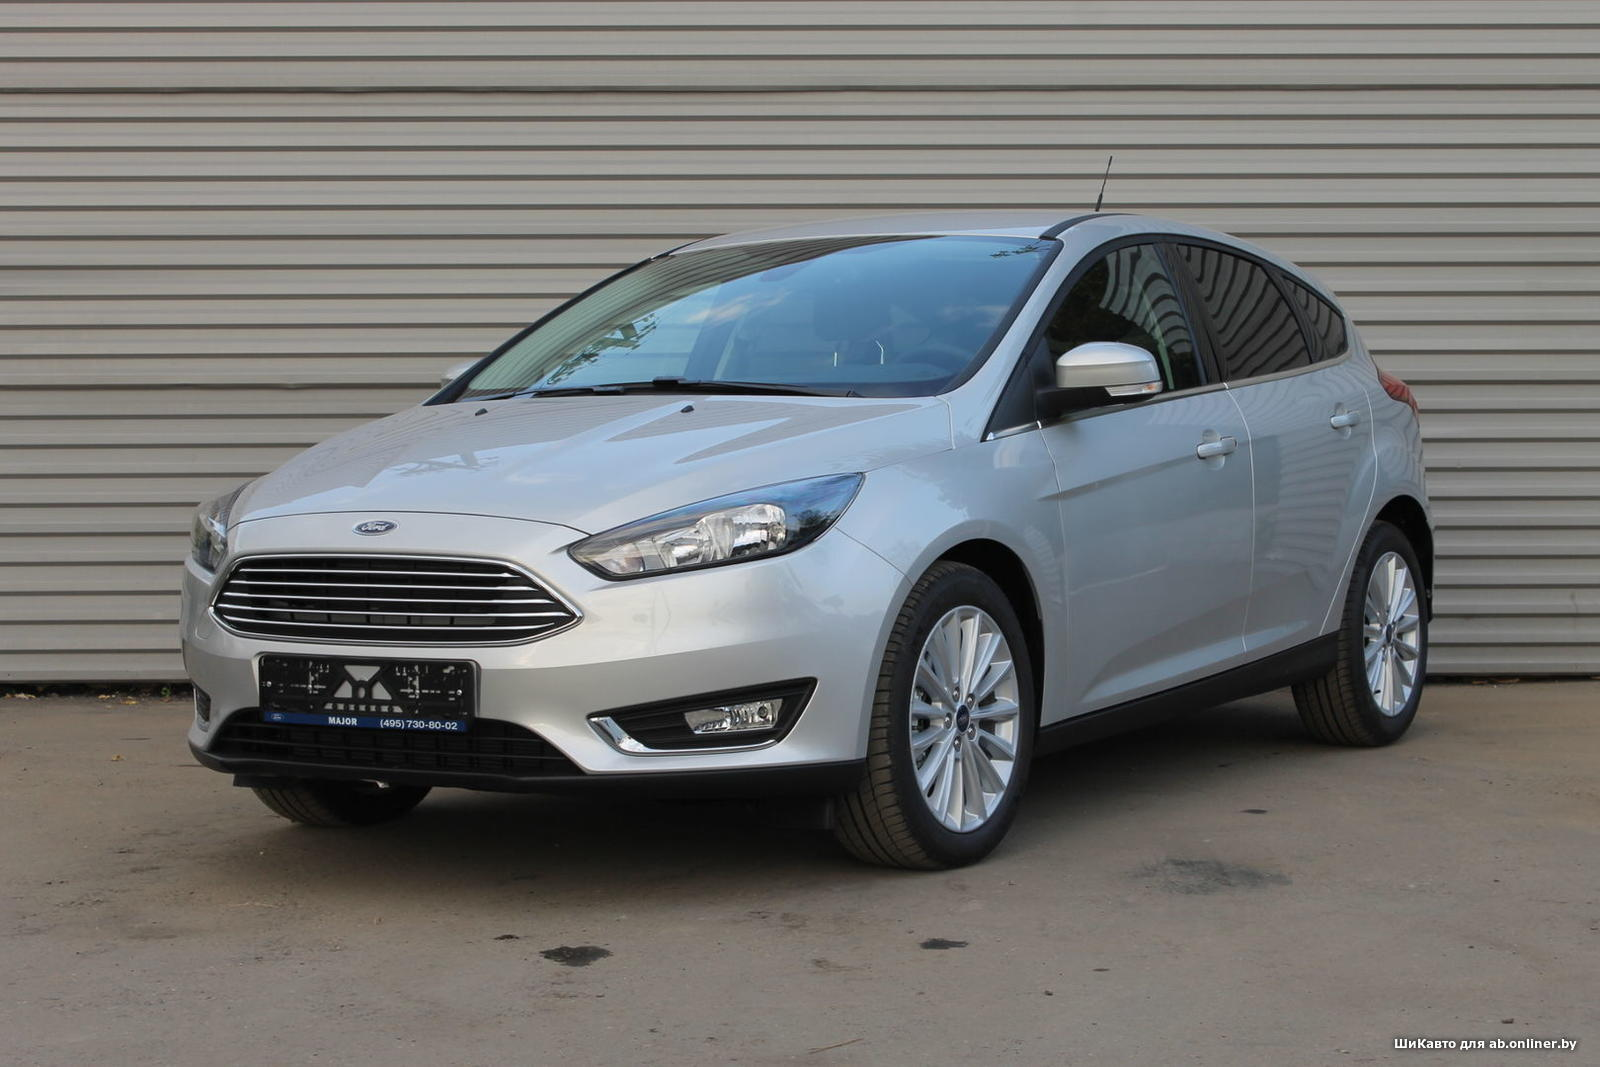 Ford Focus TITANIUM 1.5 AT HATCHBACK